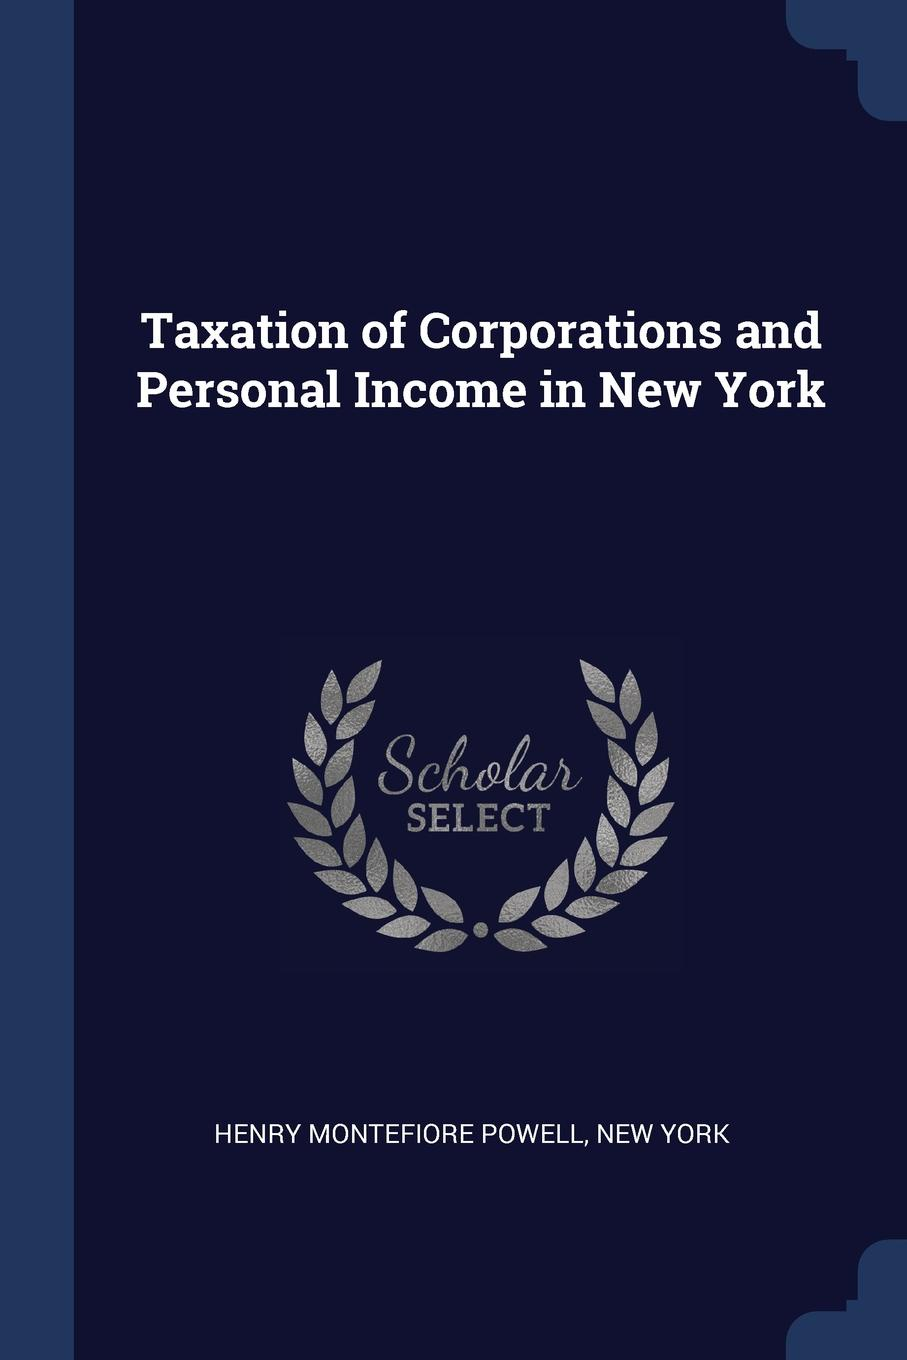 Henry Montefiore Powell, New York Taxation of Corporations and Personal Income in